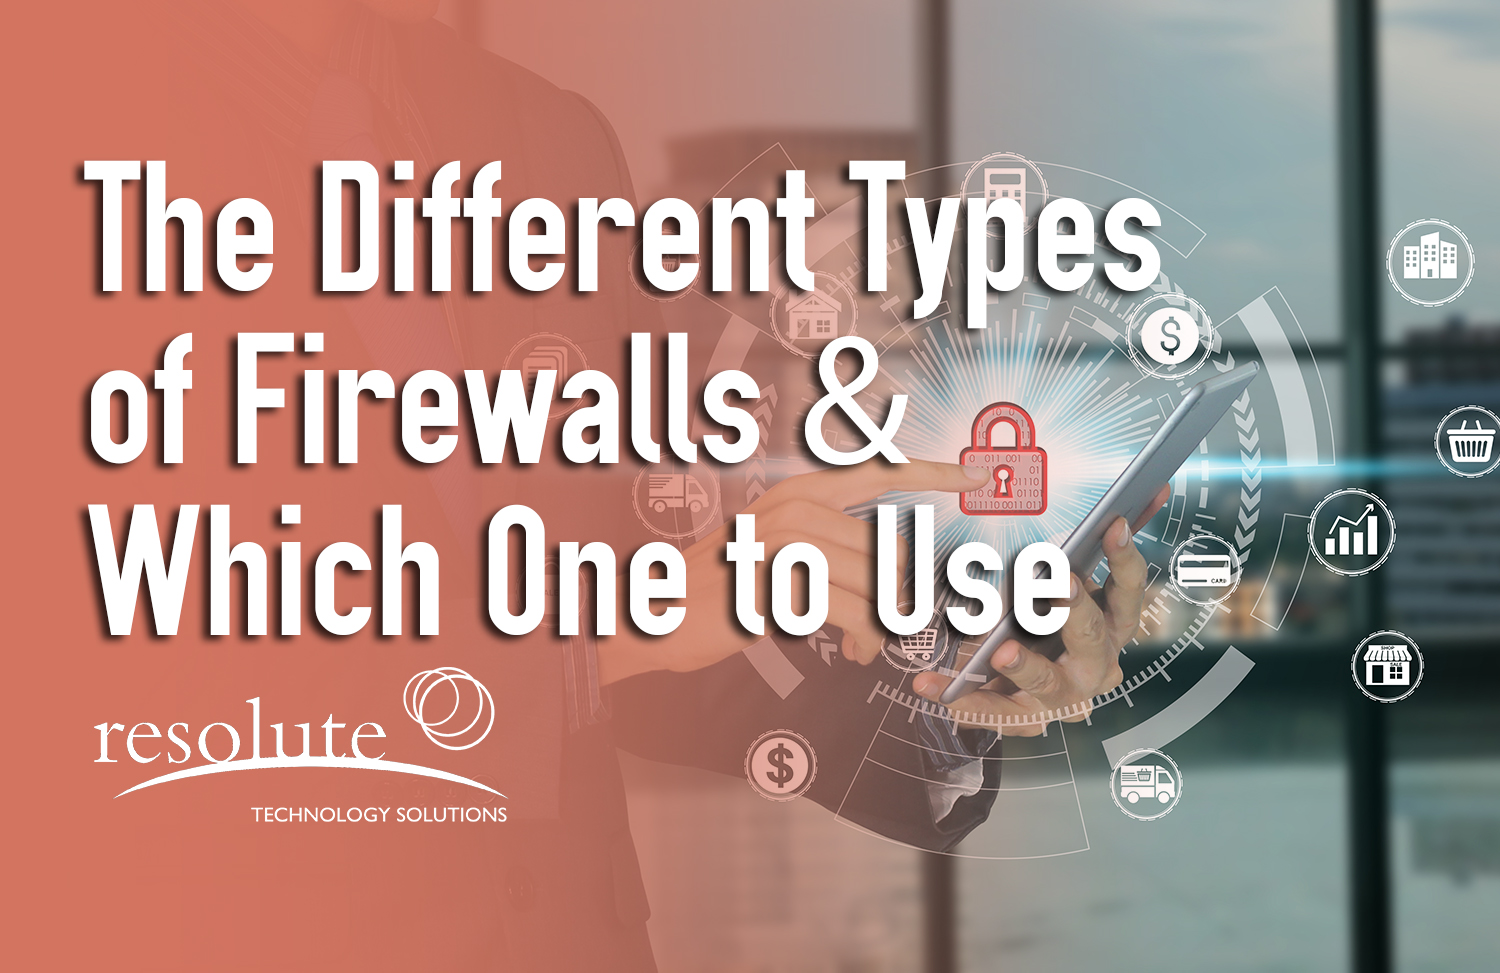 The Different Types of Firewalls & Which One To Use For Network Security